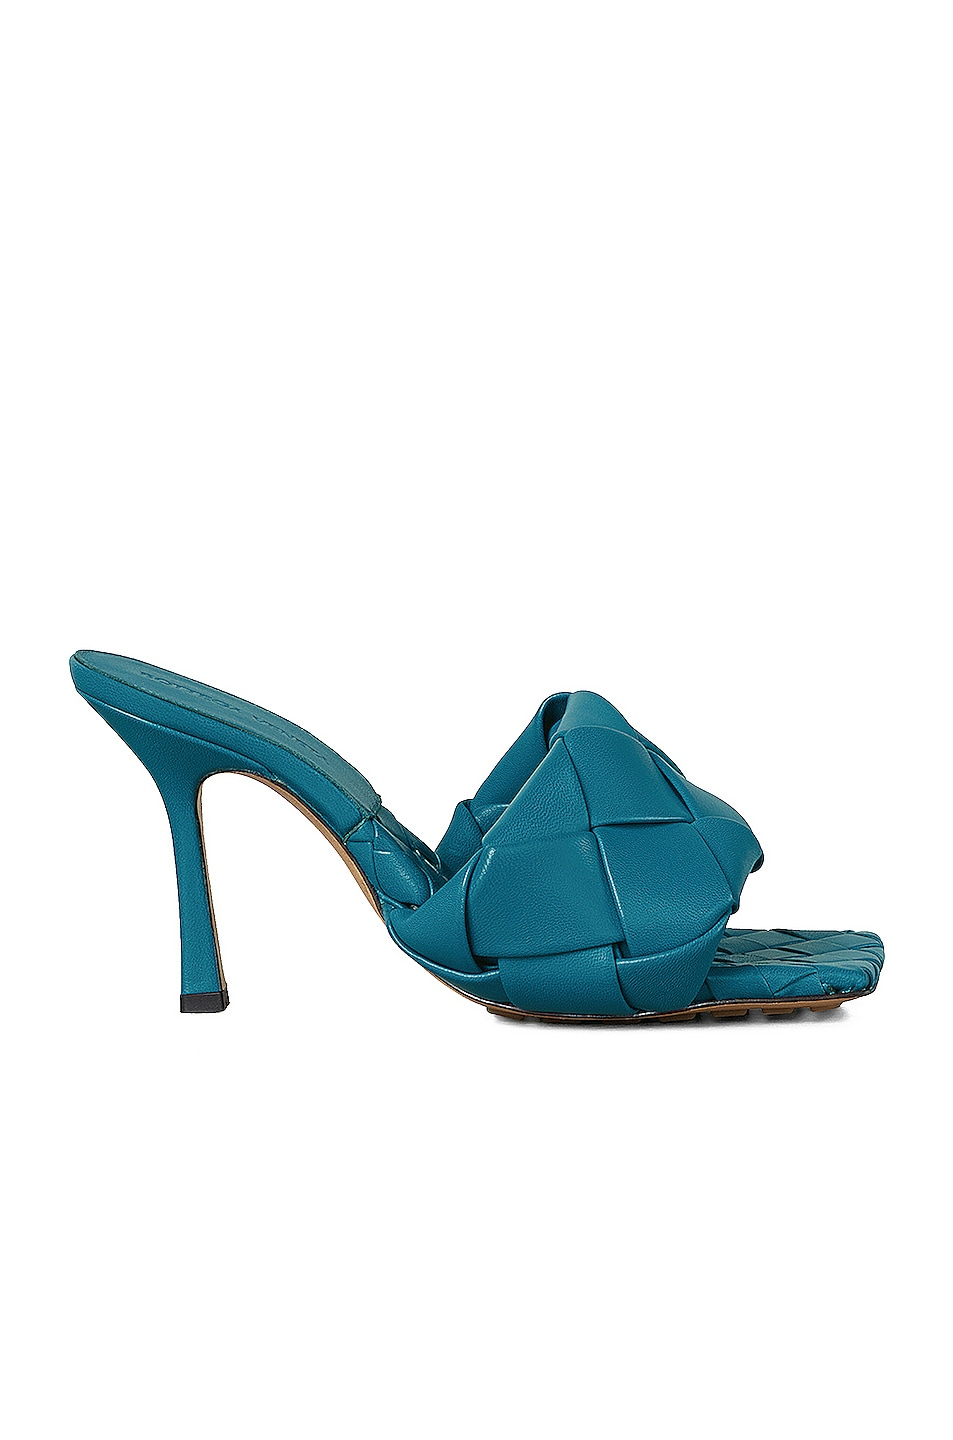 Image 1 of Bottega Veneta Lido Leather Woven Sandals in Vintage Blue